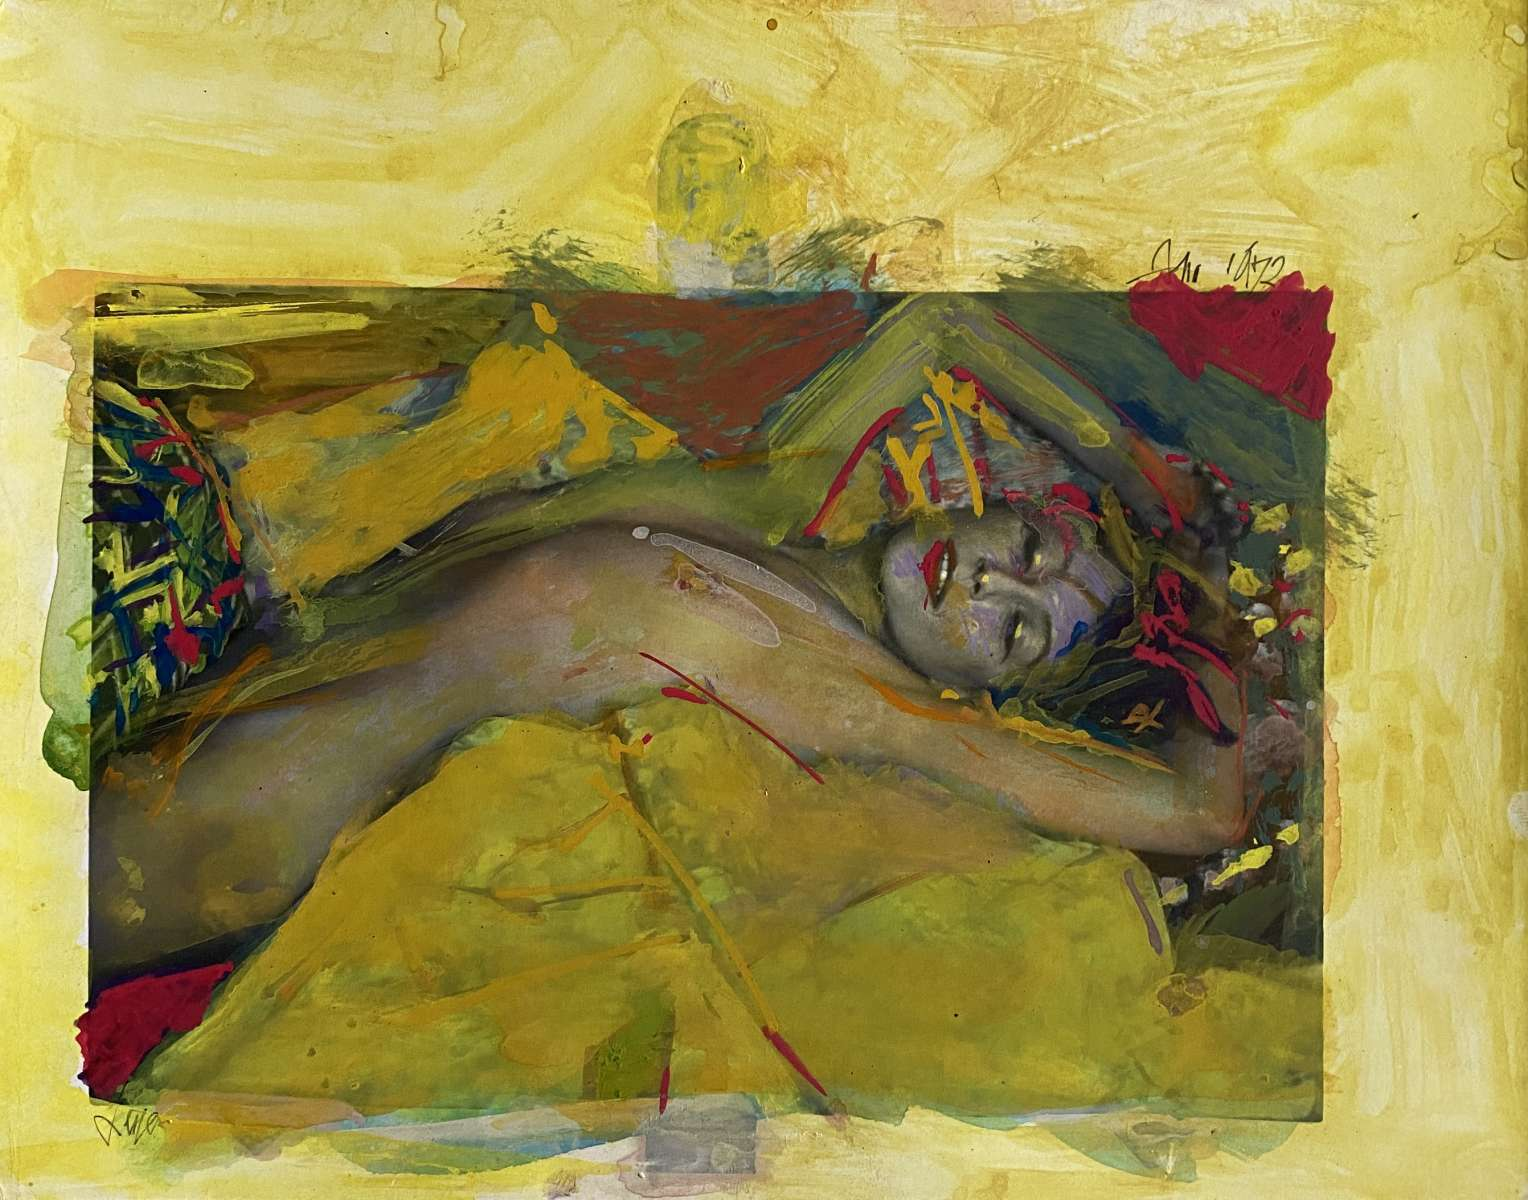 Exhibition Review: Saul Leiter's Painted Nudes